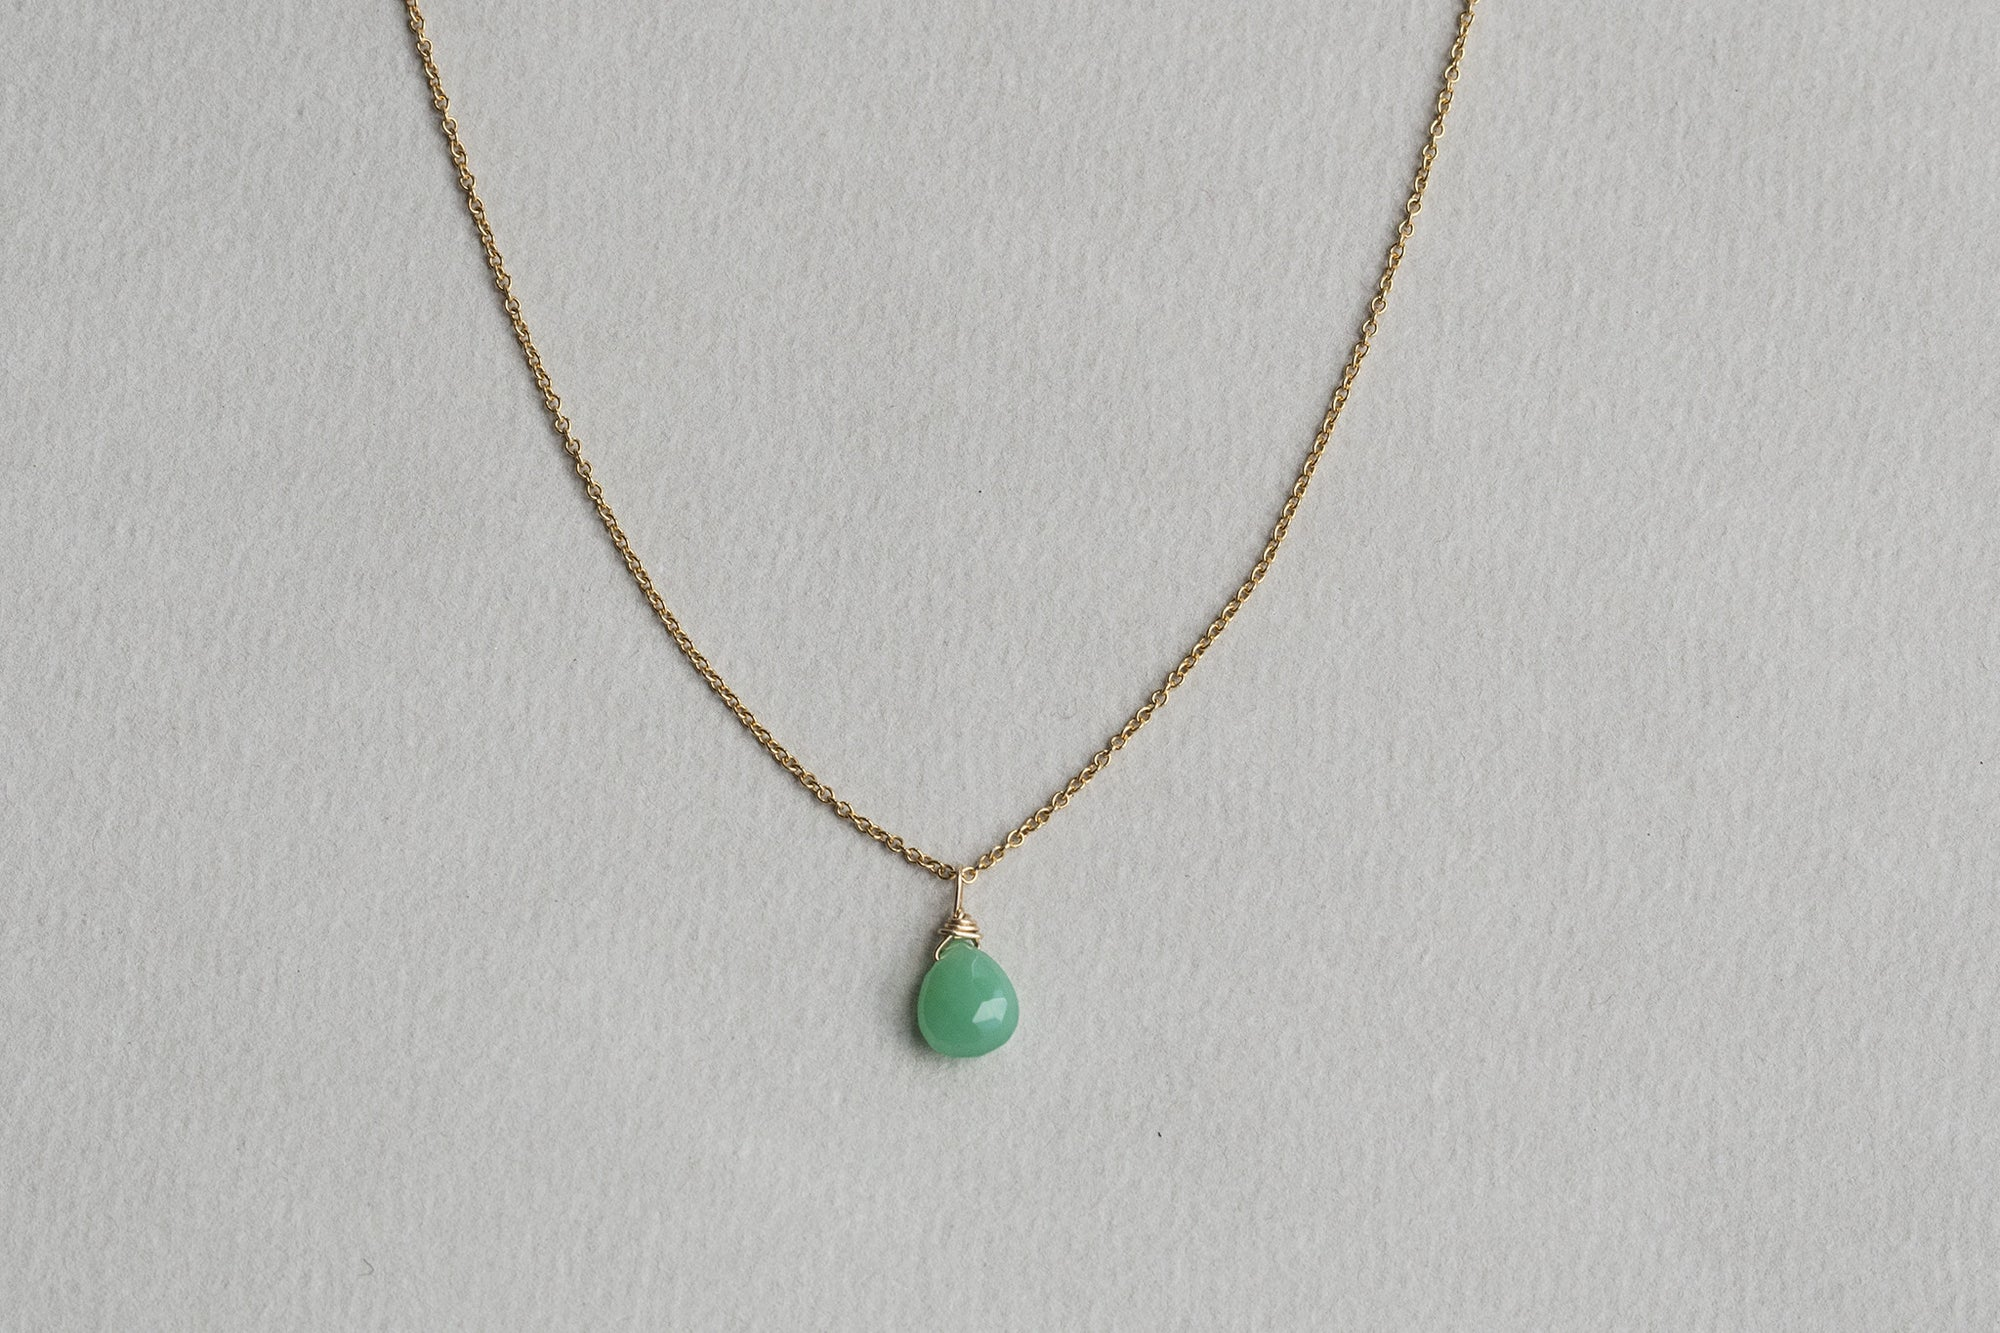 Ayshe Brandts Jewellery chrysoprase briolette necklace on gold filled chain